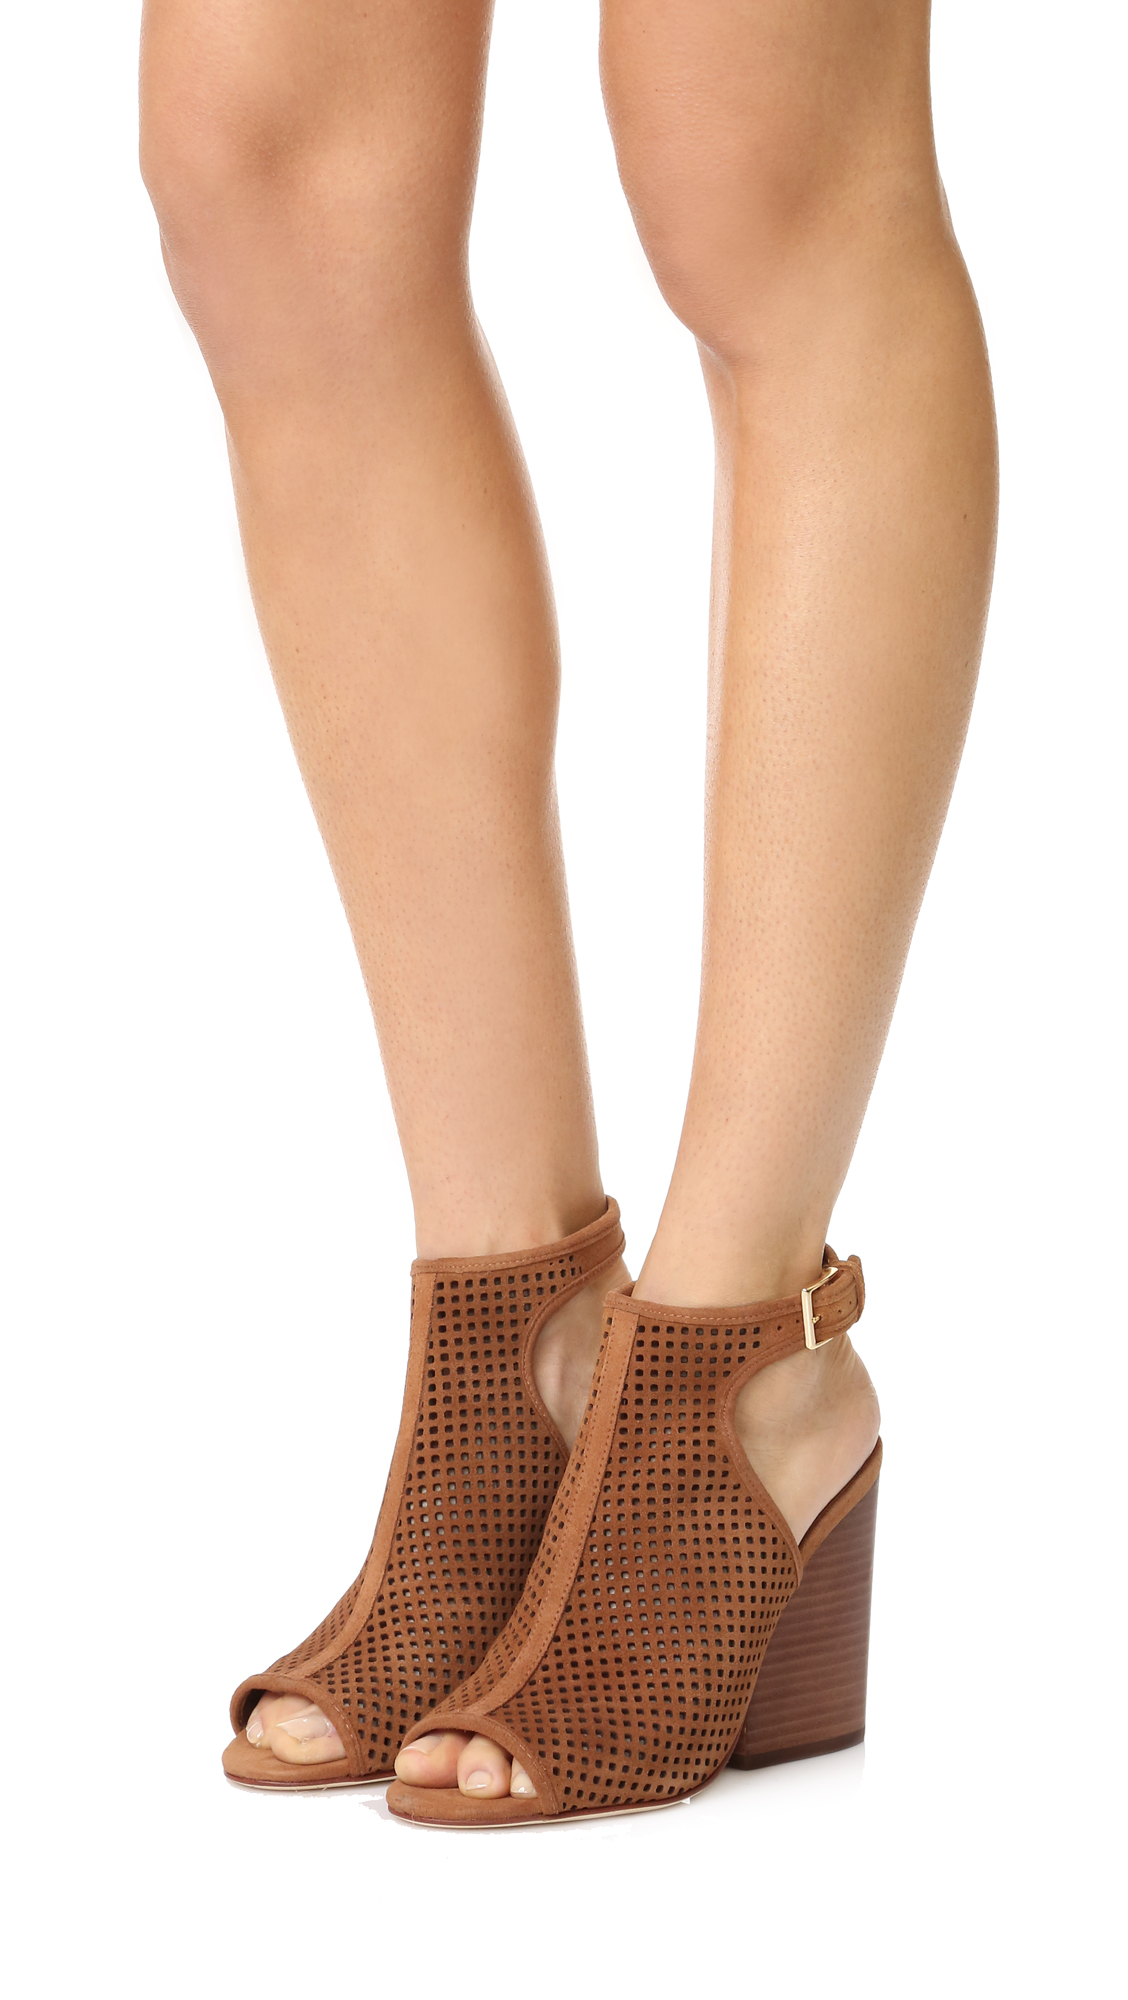 a3d7f65166a9 Tory Burch Jesse Open Toe Booties